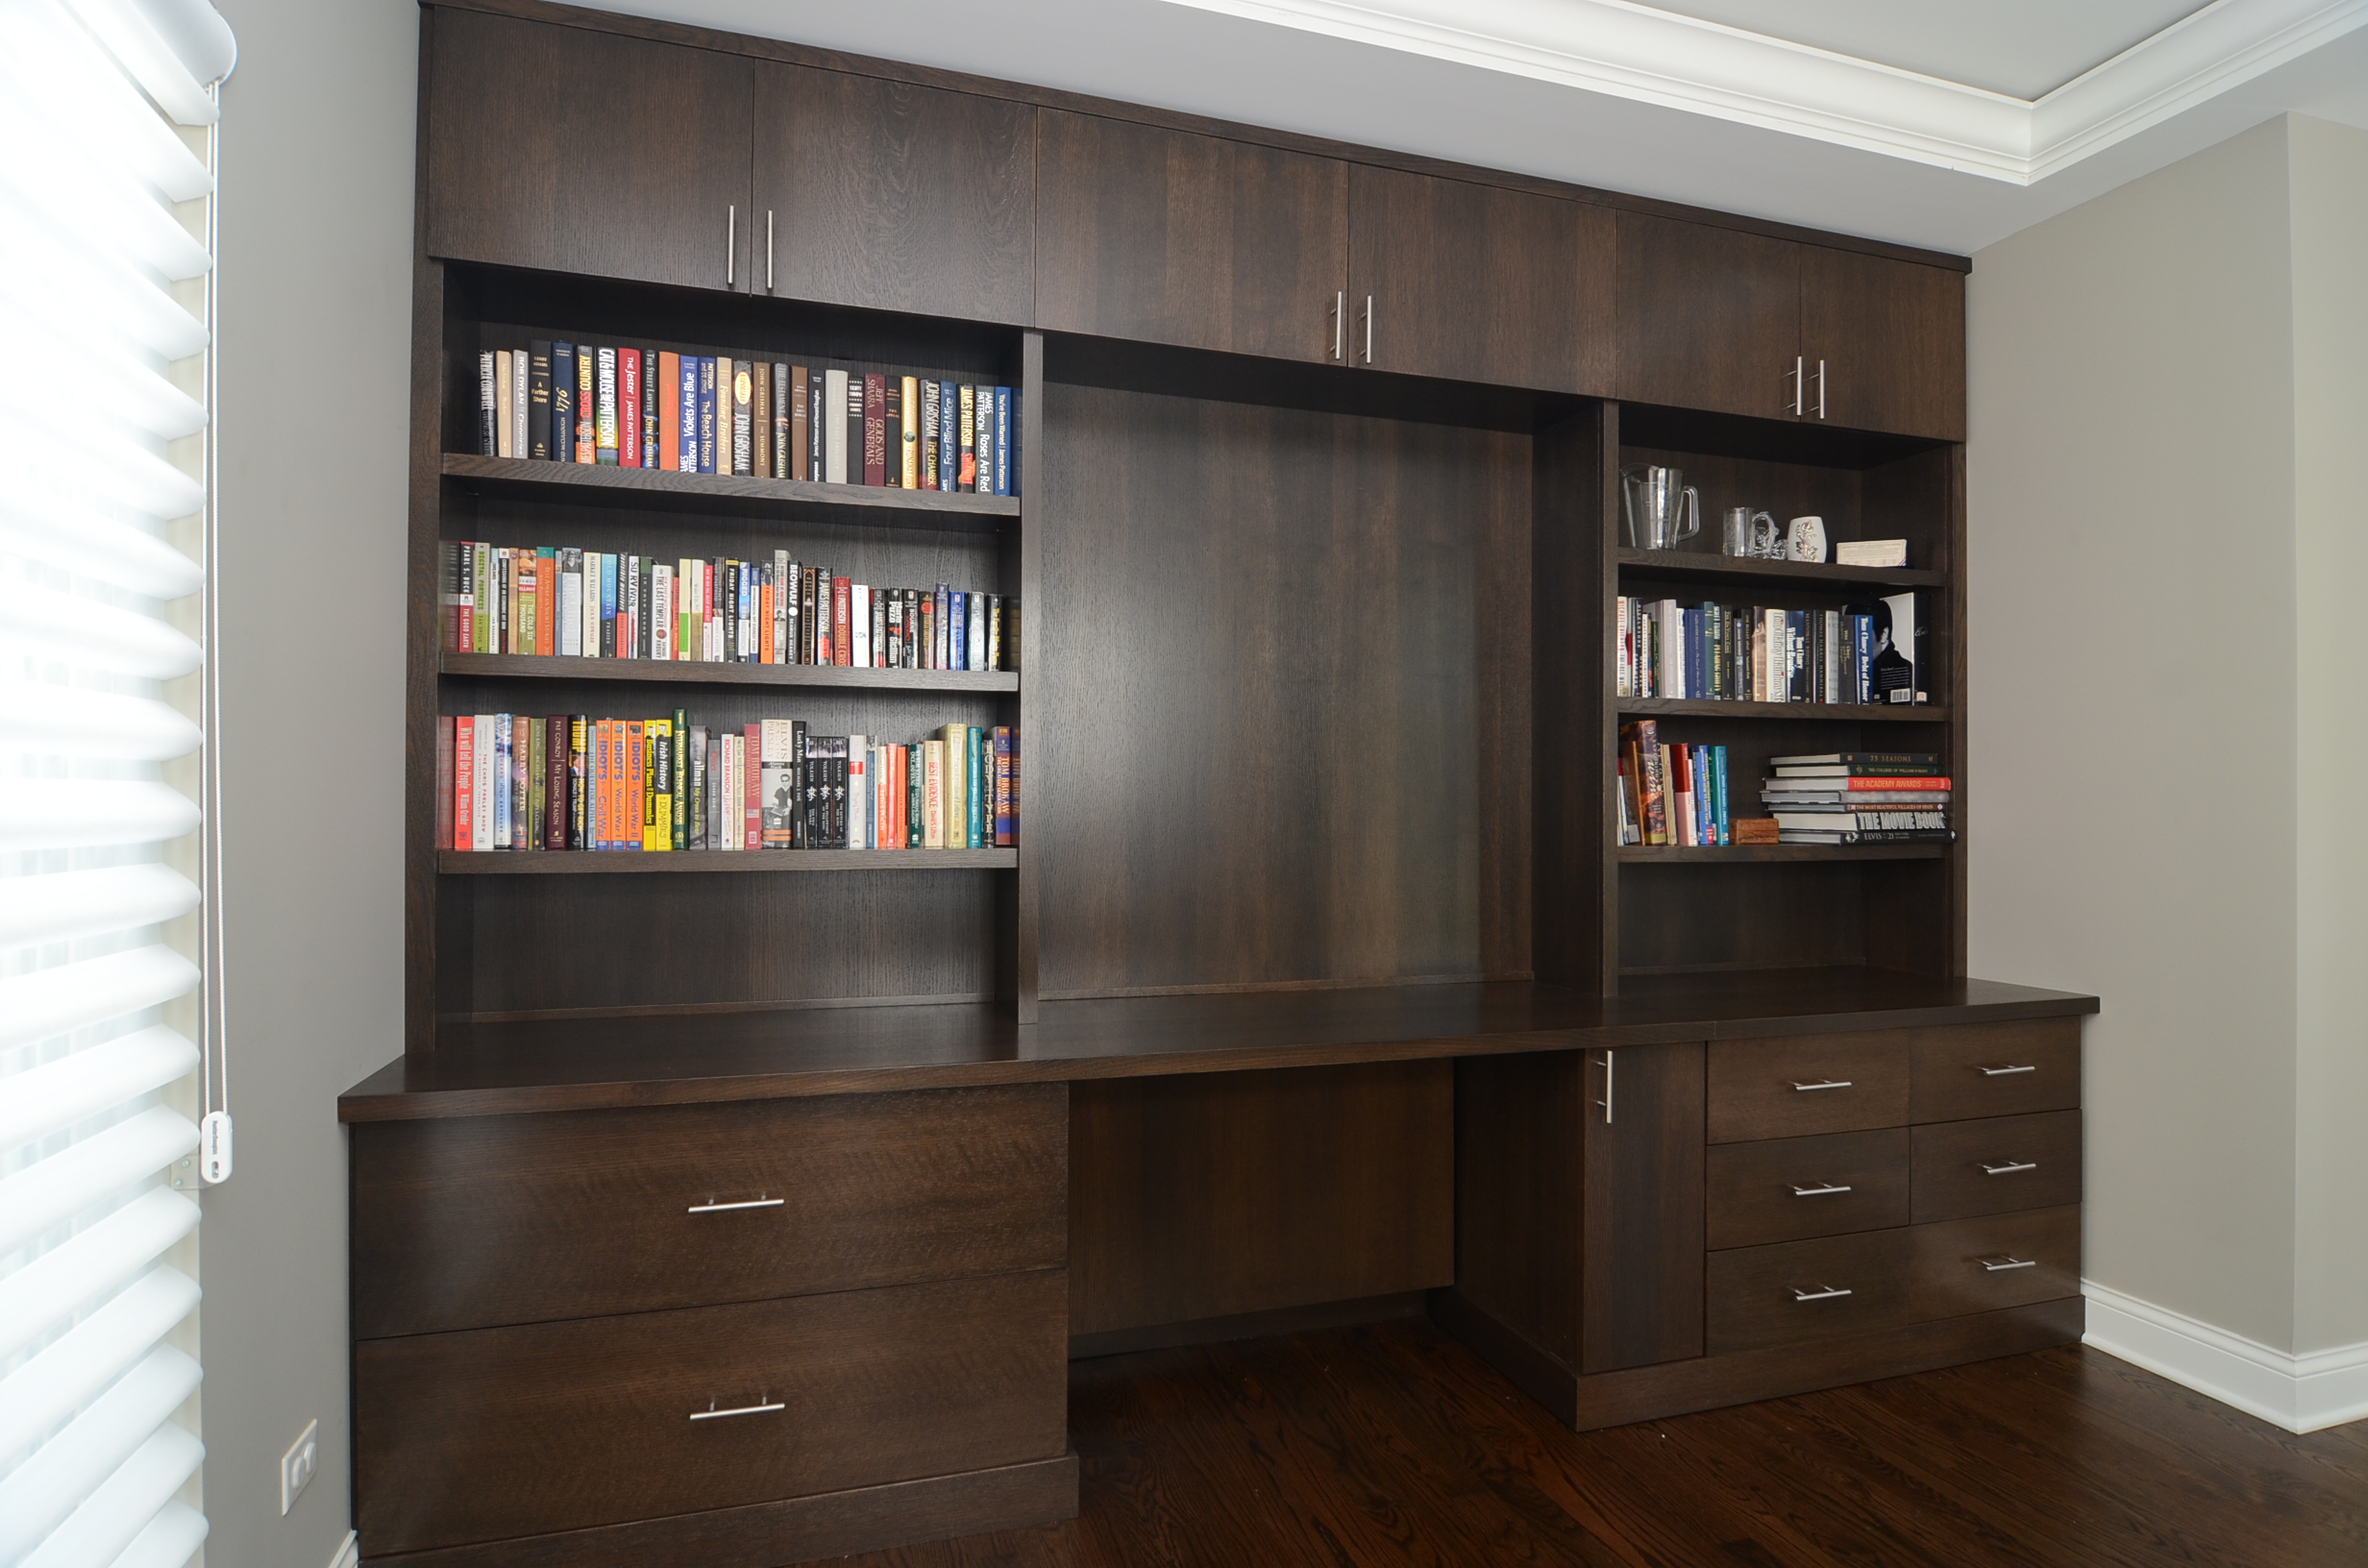 Extra Size Dark Wood Wall Shelving Unit With Center Desk And Under Cabinet Systems Many